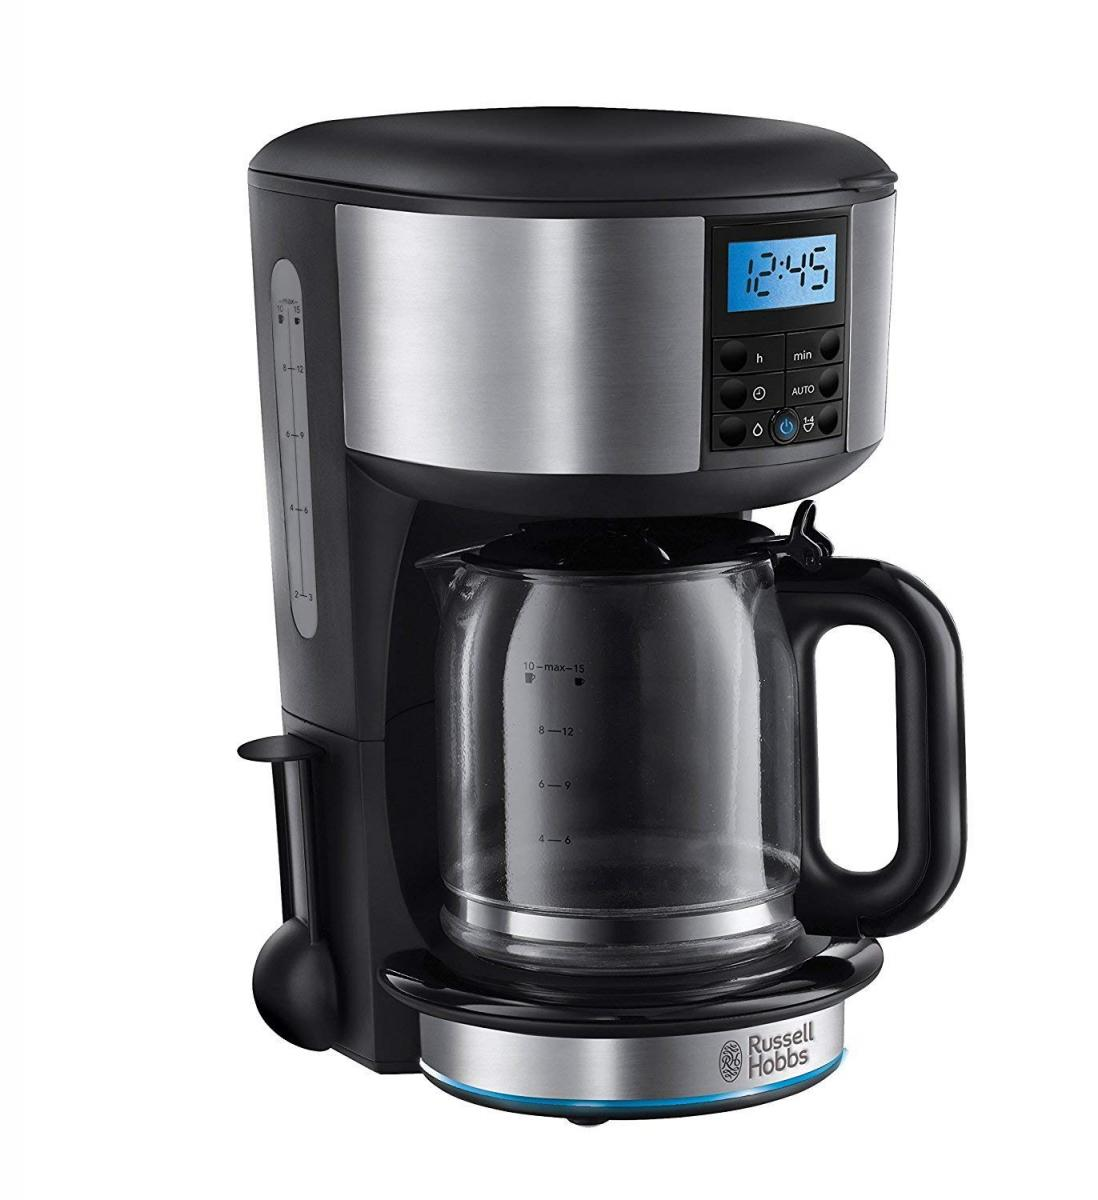 Buckingham Filter Coffee Machine 1.25L – Now Only £32.00